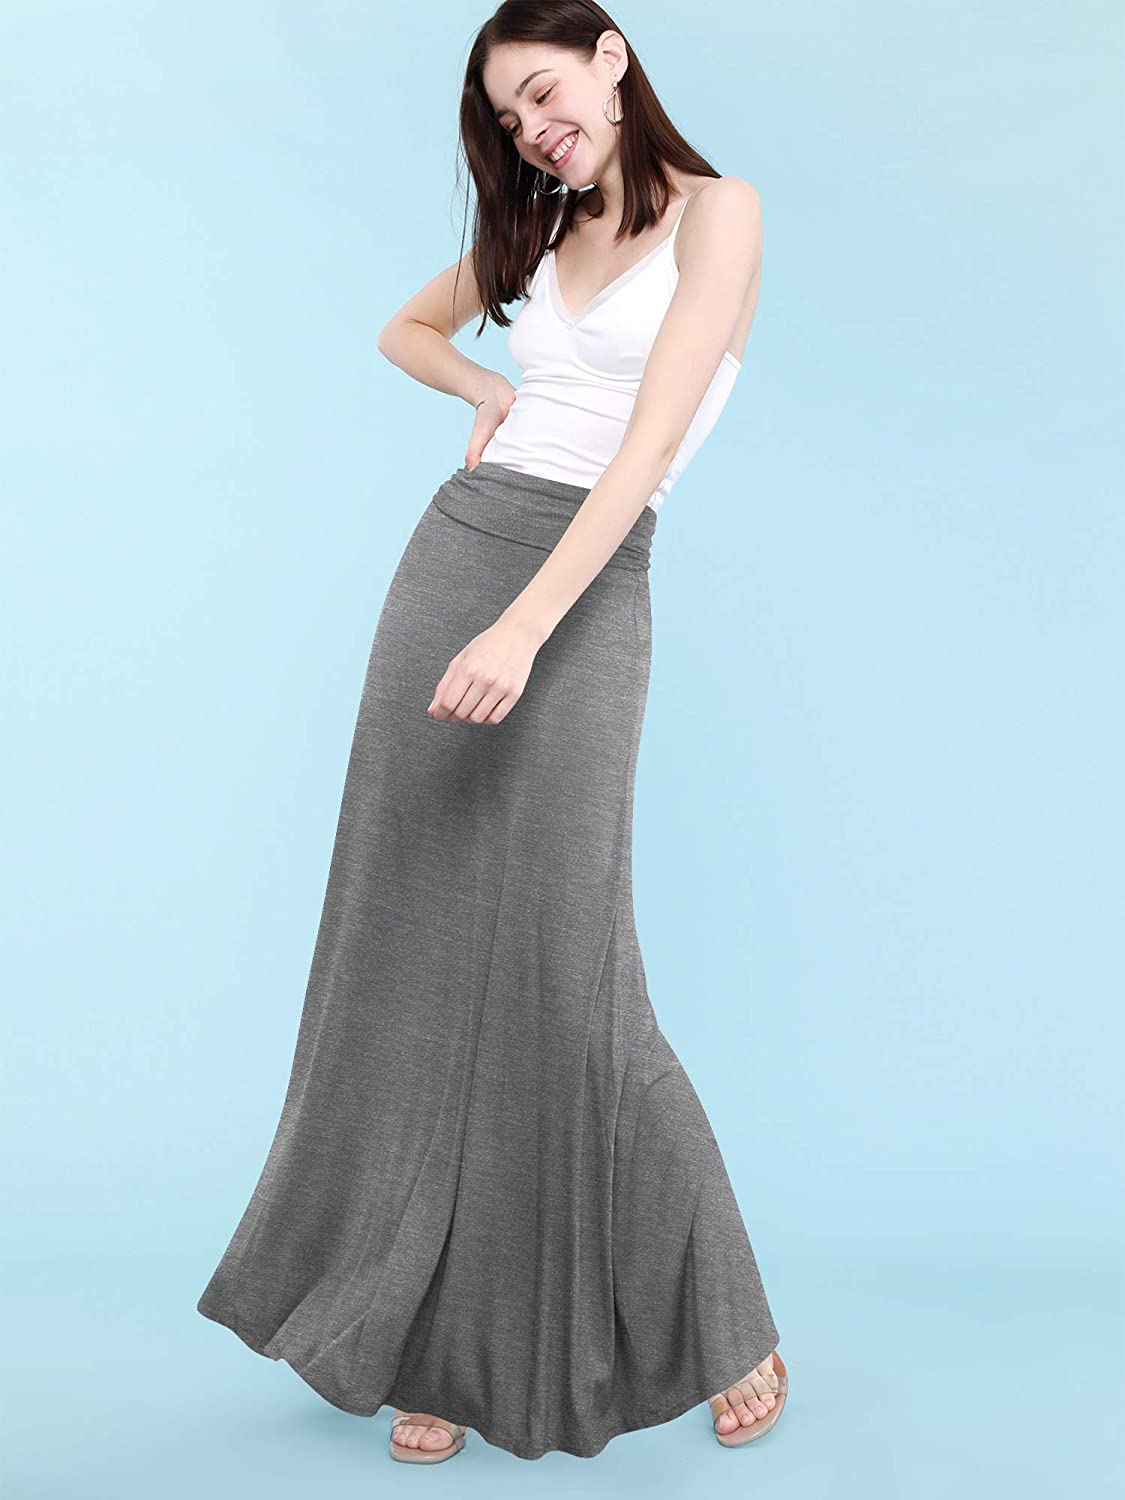 Made By Johnny Women's Solid Basic Lightweight Floor Length Maxi Lounge Skirt (S~3XL)